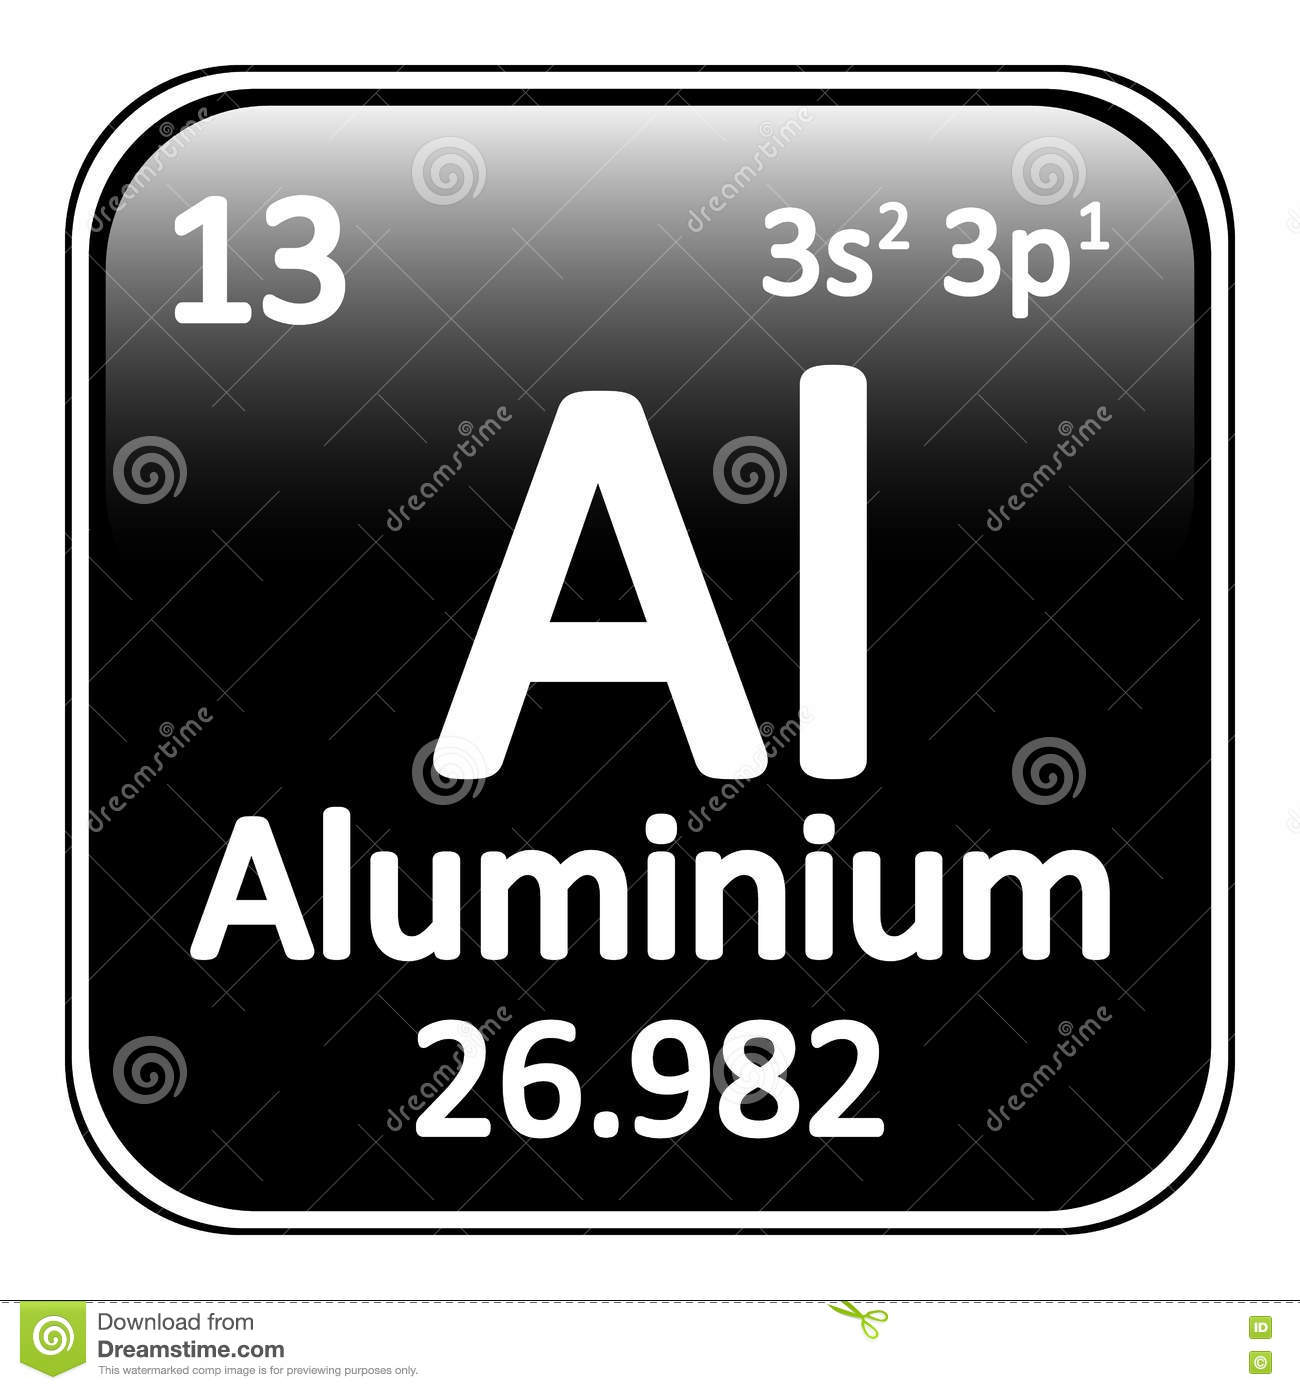 Periodic table aluminium choice image periodic table images periodic table element aluminium icon stock illustration image royalty free illustration download periodic table element aluminium gamestrikefo Image collections